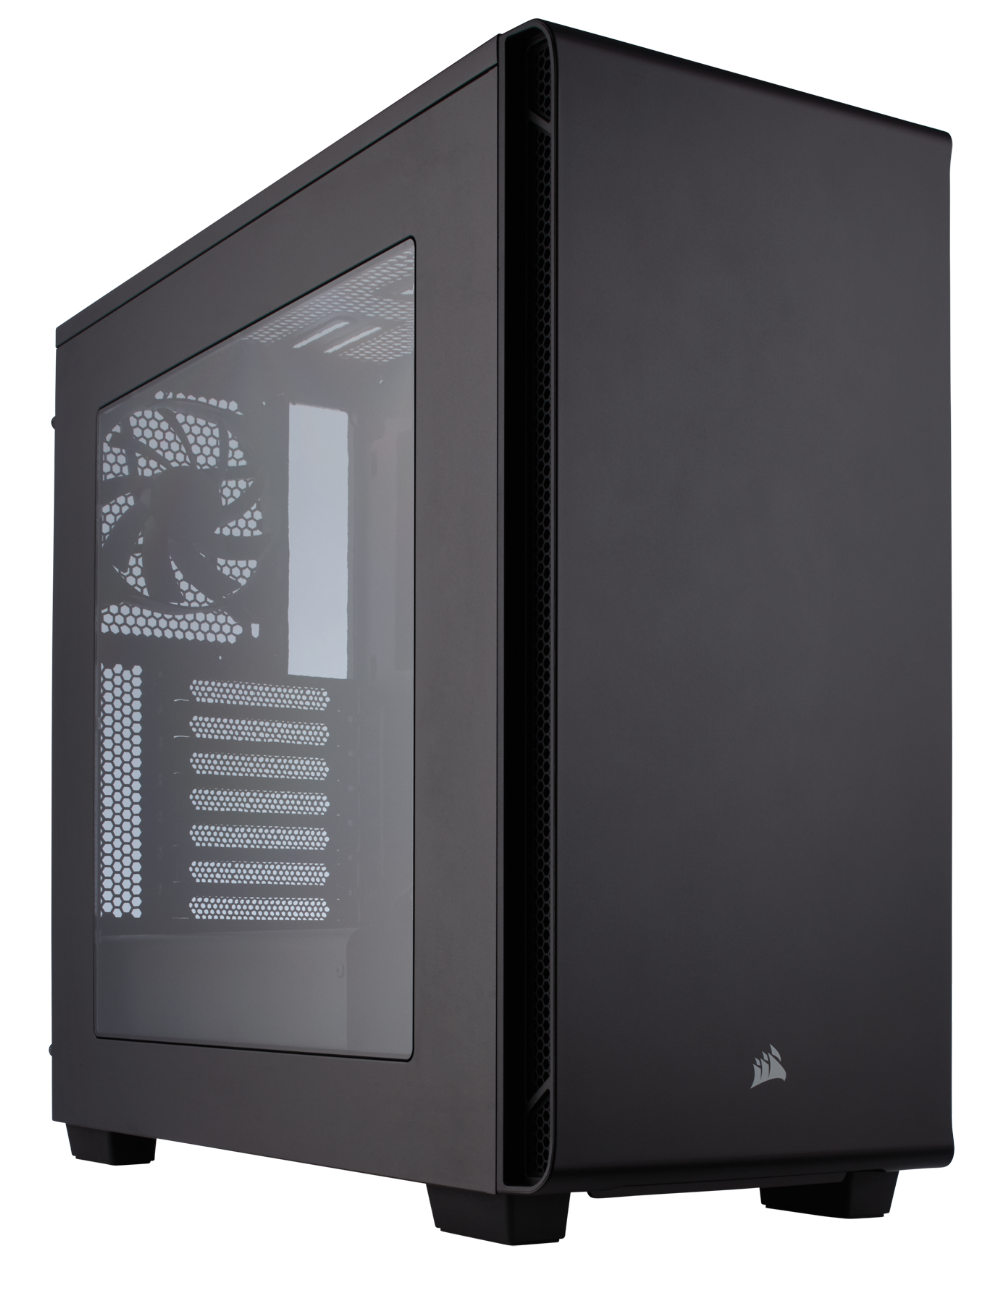 ktc_corsair-carbide-series-270r-black-windowed-atx-mid-tower-case_full_05162017_101632